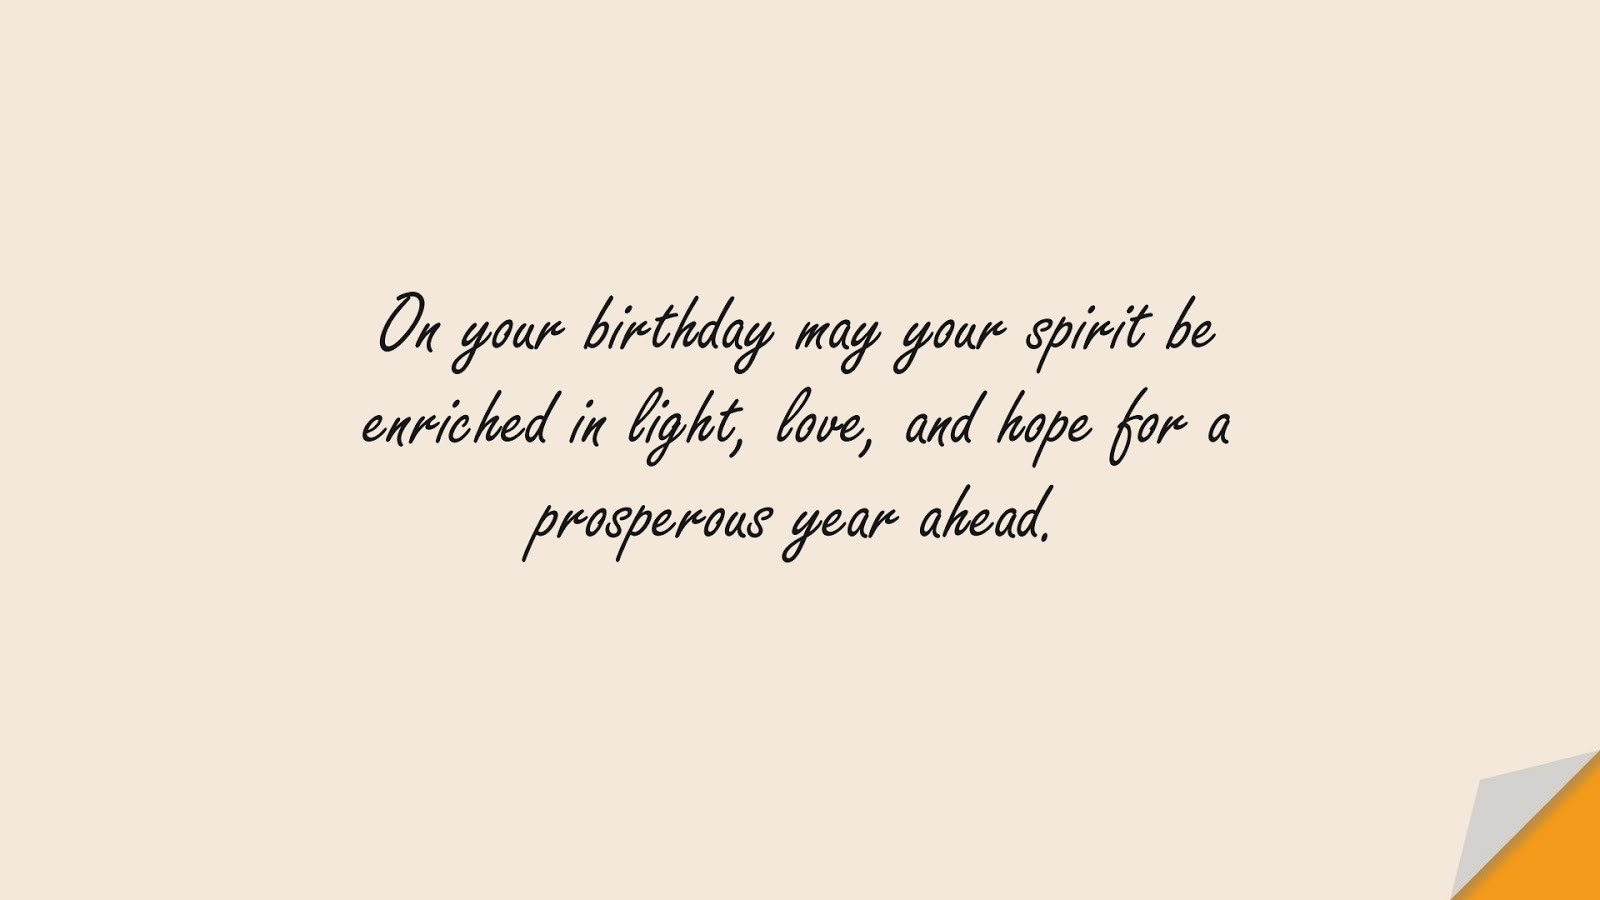 On your birthday may your spirit be enriched in light, love, and hope for a prosperous year ahead.FALSE